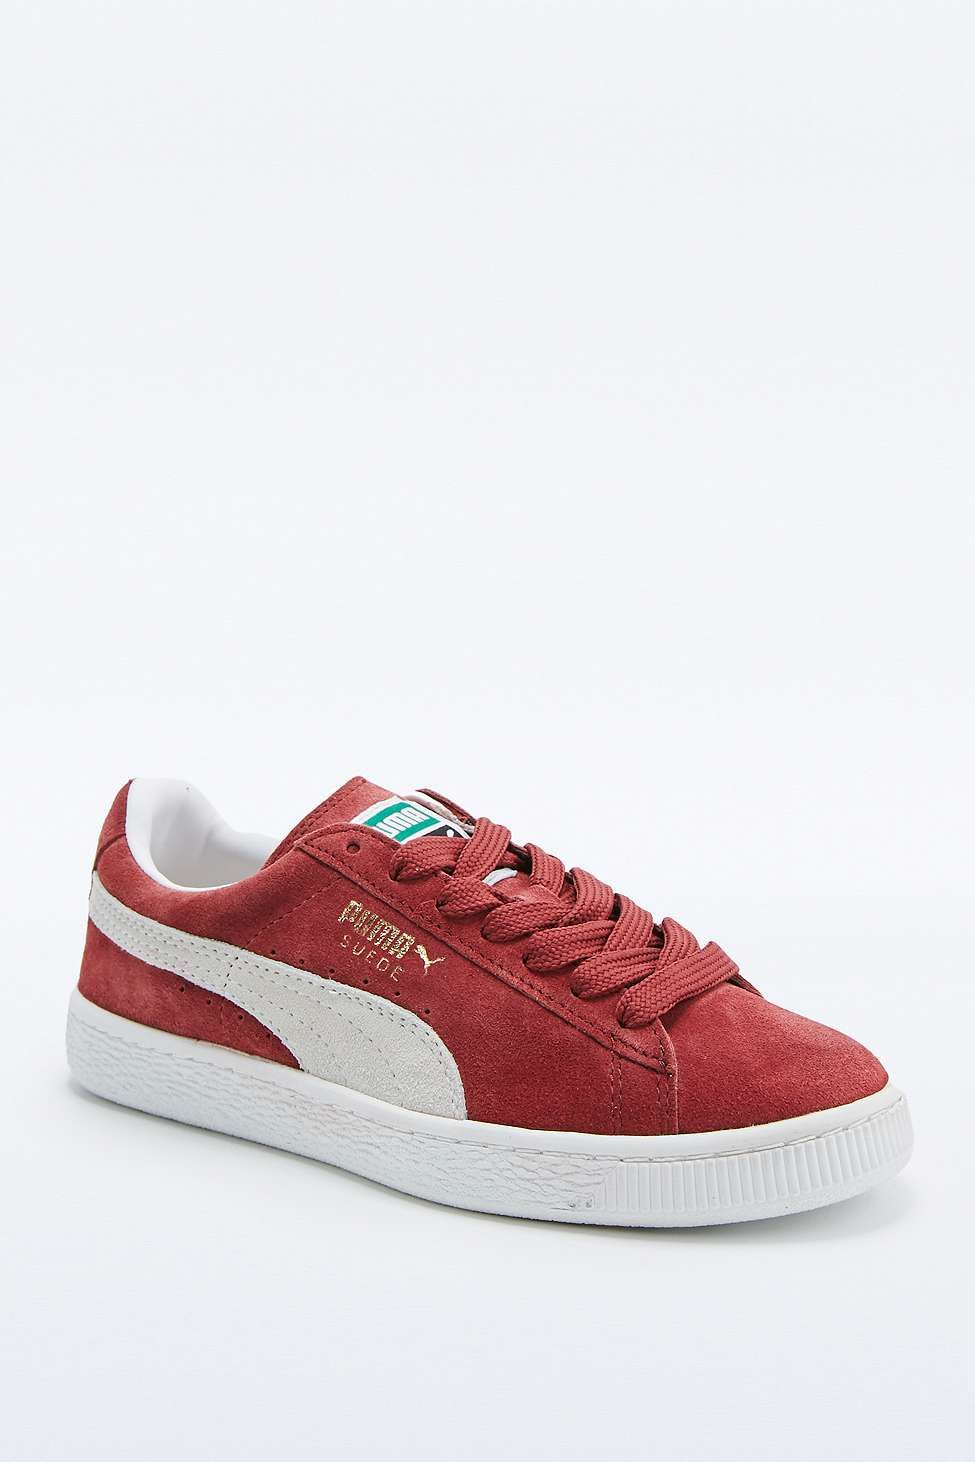 "Puma – Sneaker ""Classic"" aus Wildleder in Weinrot 